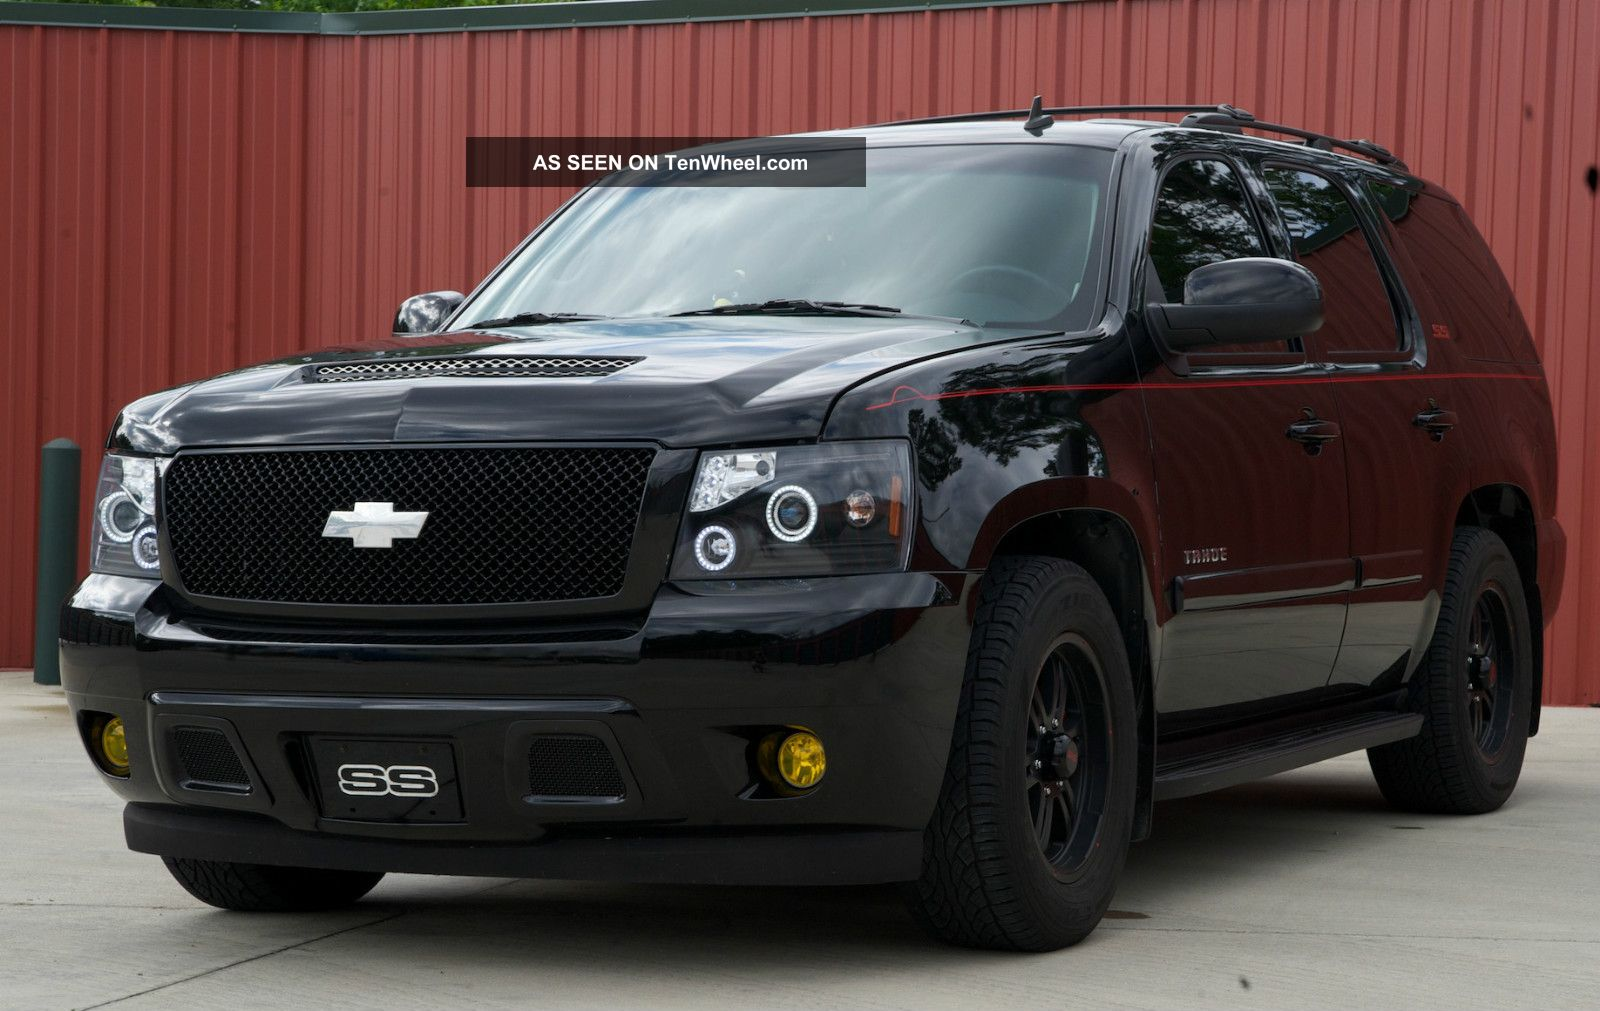 2009 chevy tahoe ss conversion. Black Bedroom Furniture Sets. Home Design Ideas